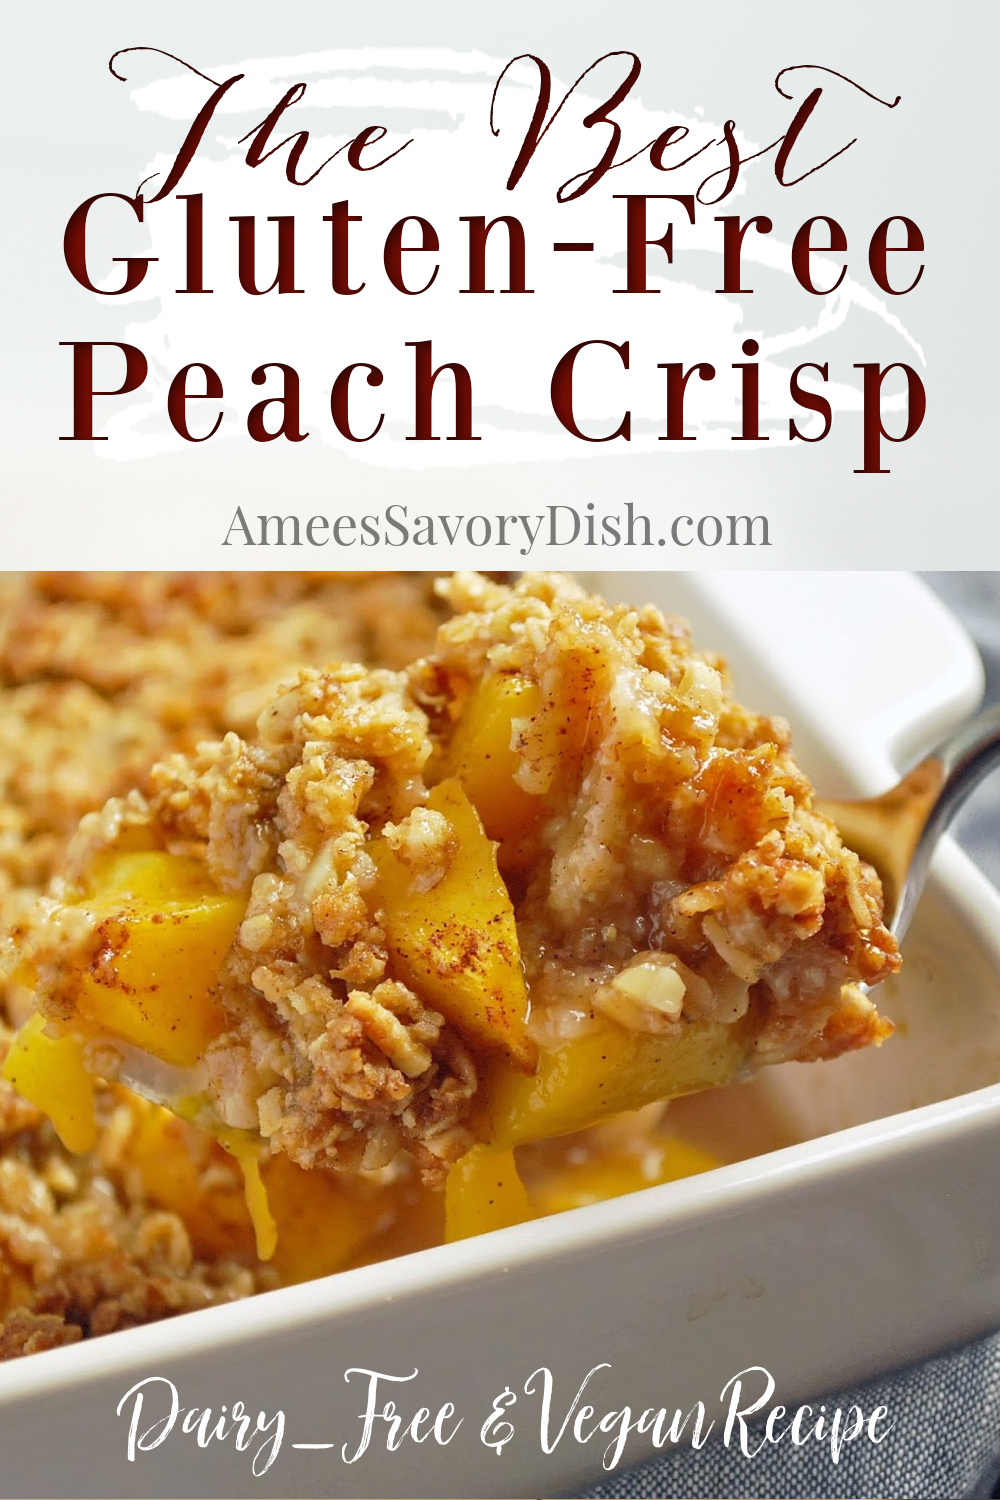 A delicious and simple recipe for gluten-free peach crisp with almonds made with whole grain oats, flax, peaches, almonds and organic coconut oil. This easy peach crisp recipe is also Vegan and dairy-free. #peachcrisp #veganfruitcrisp #dairyfreedessert #glutenfreecrisp #glutenfreedessert #peachdessert via @Ameessavorydish